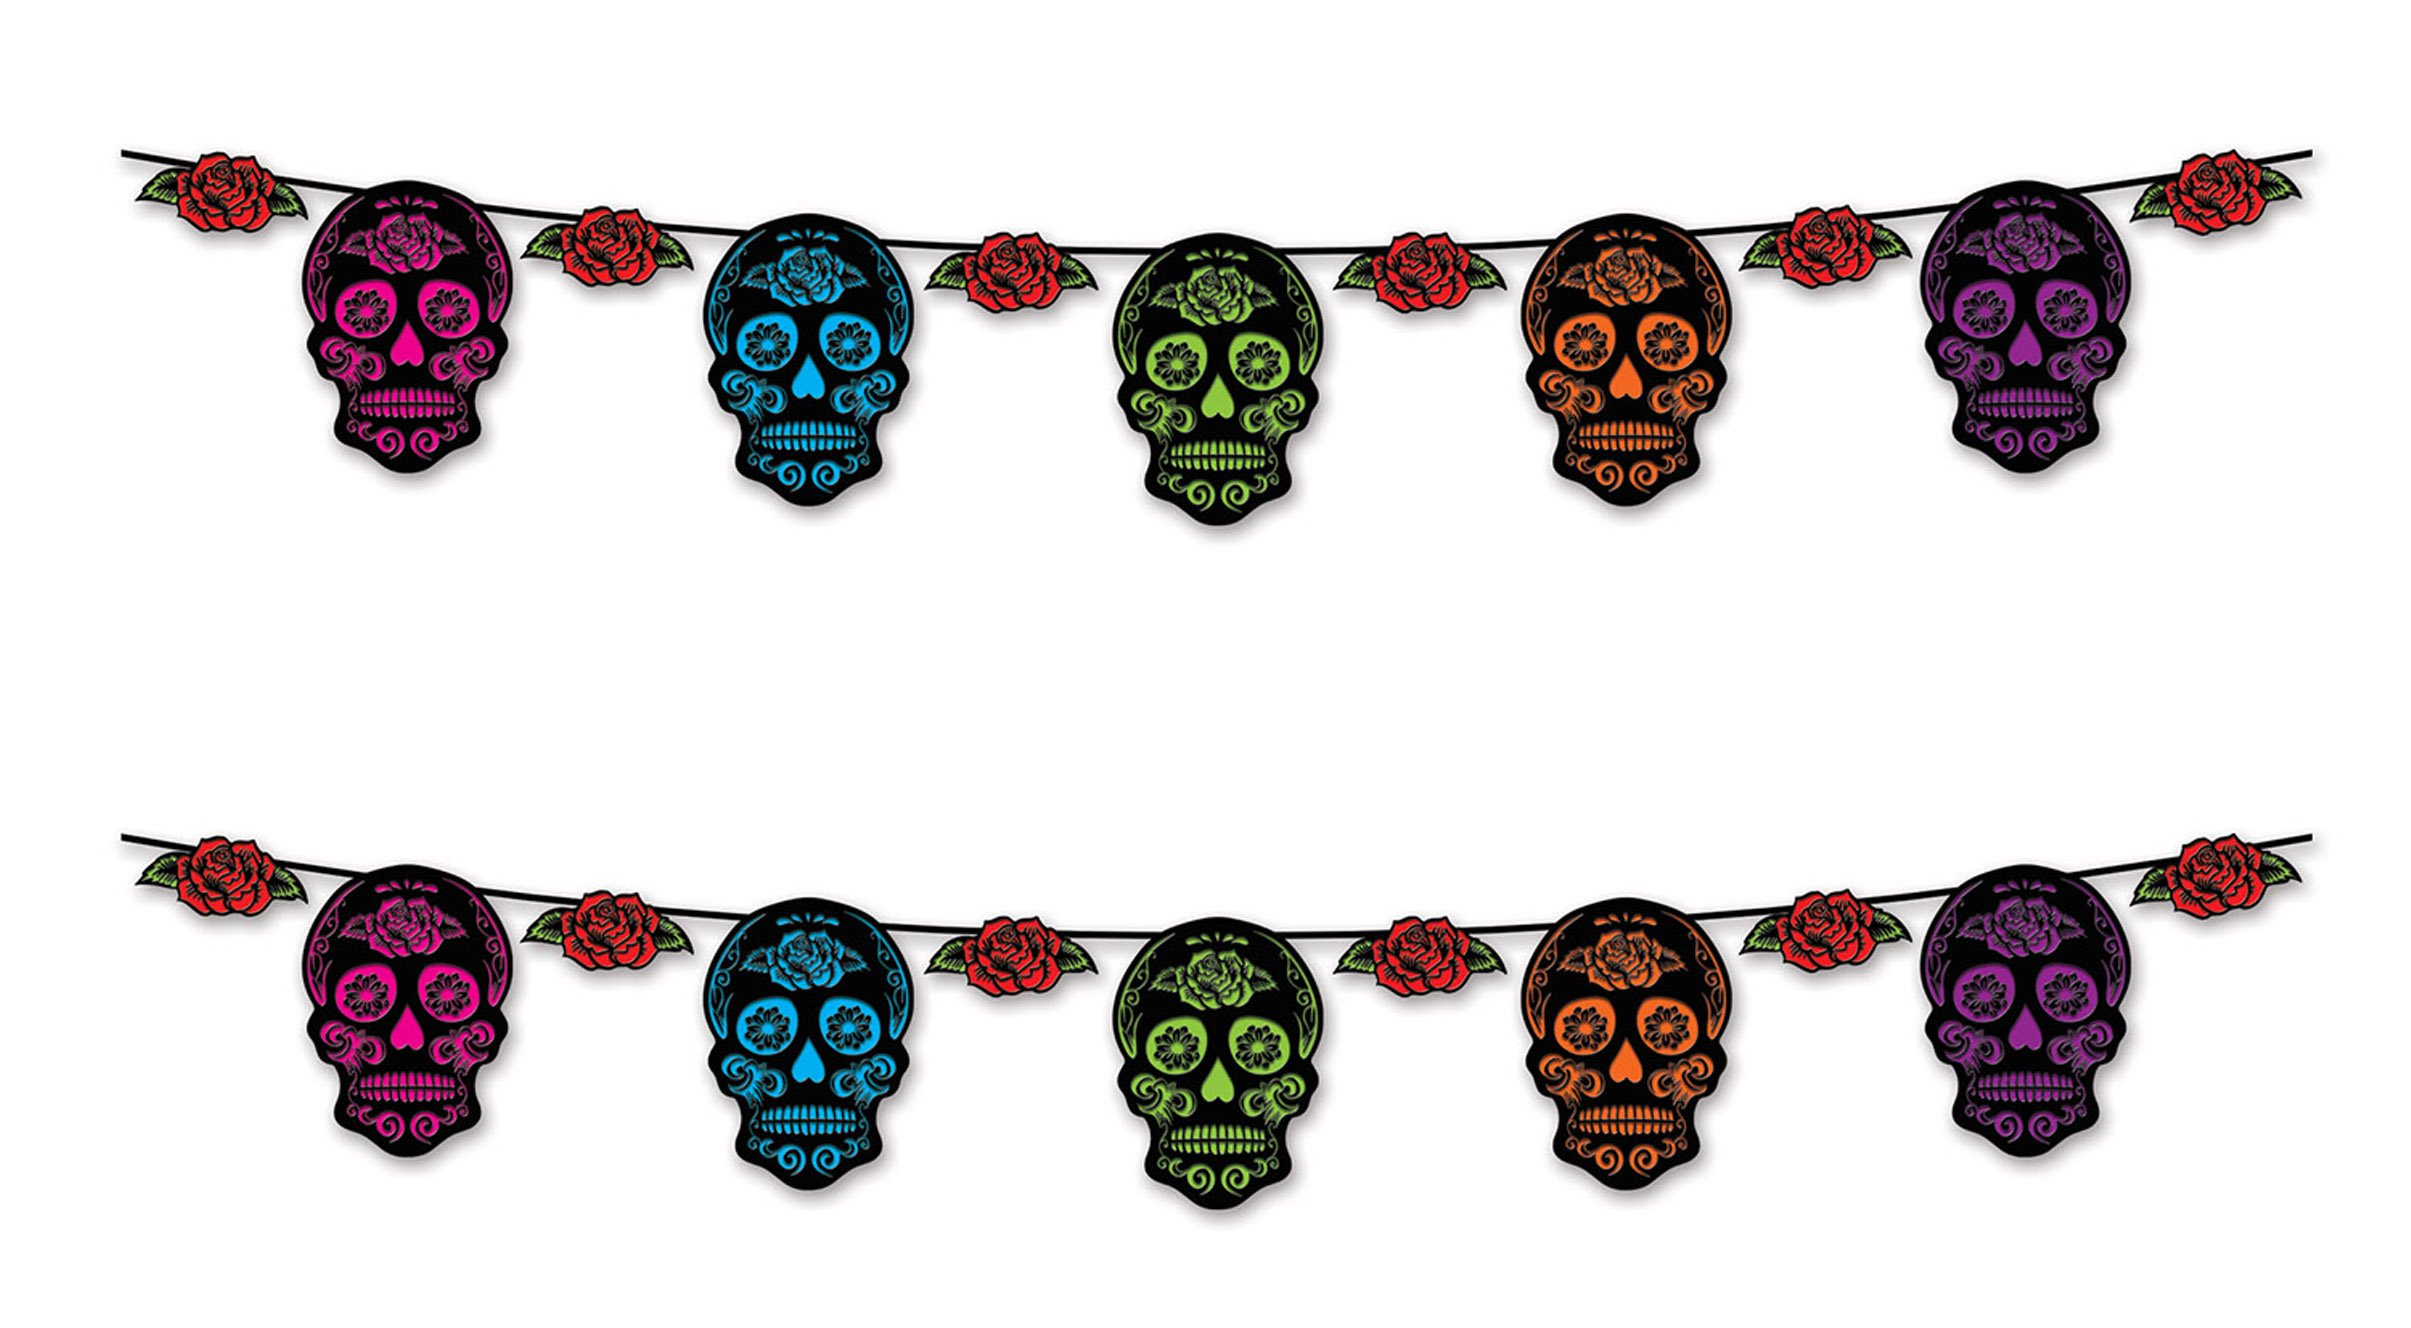 Beistle 00357, 2 Piece Day of the Dead Sugar Skull Streamers, 9'' x 12'